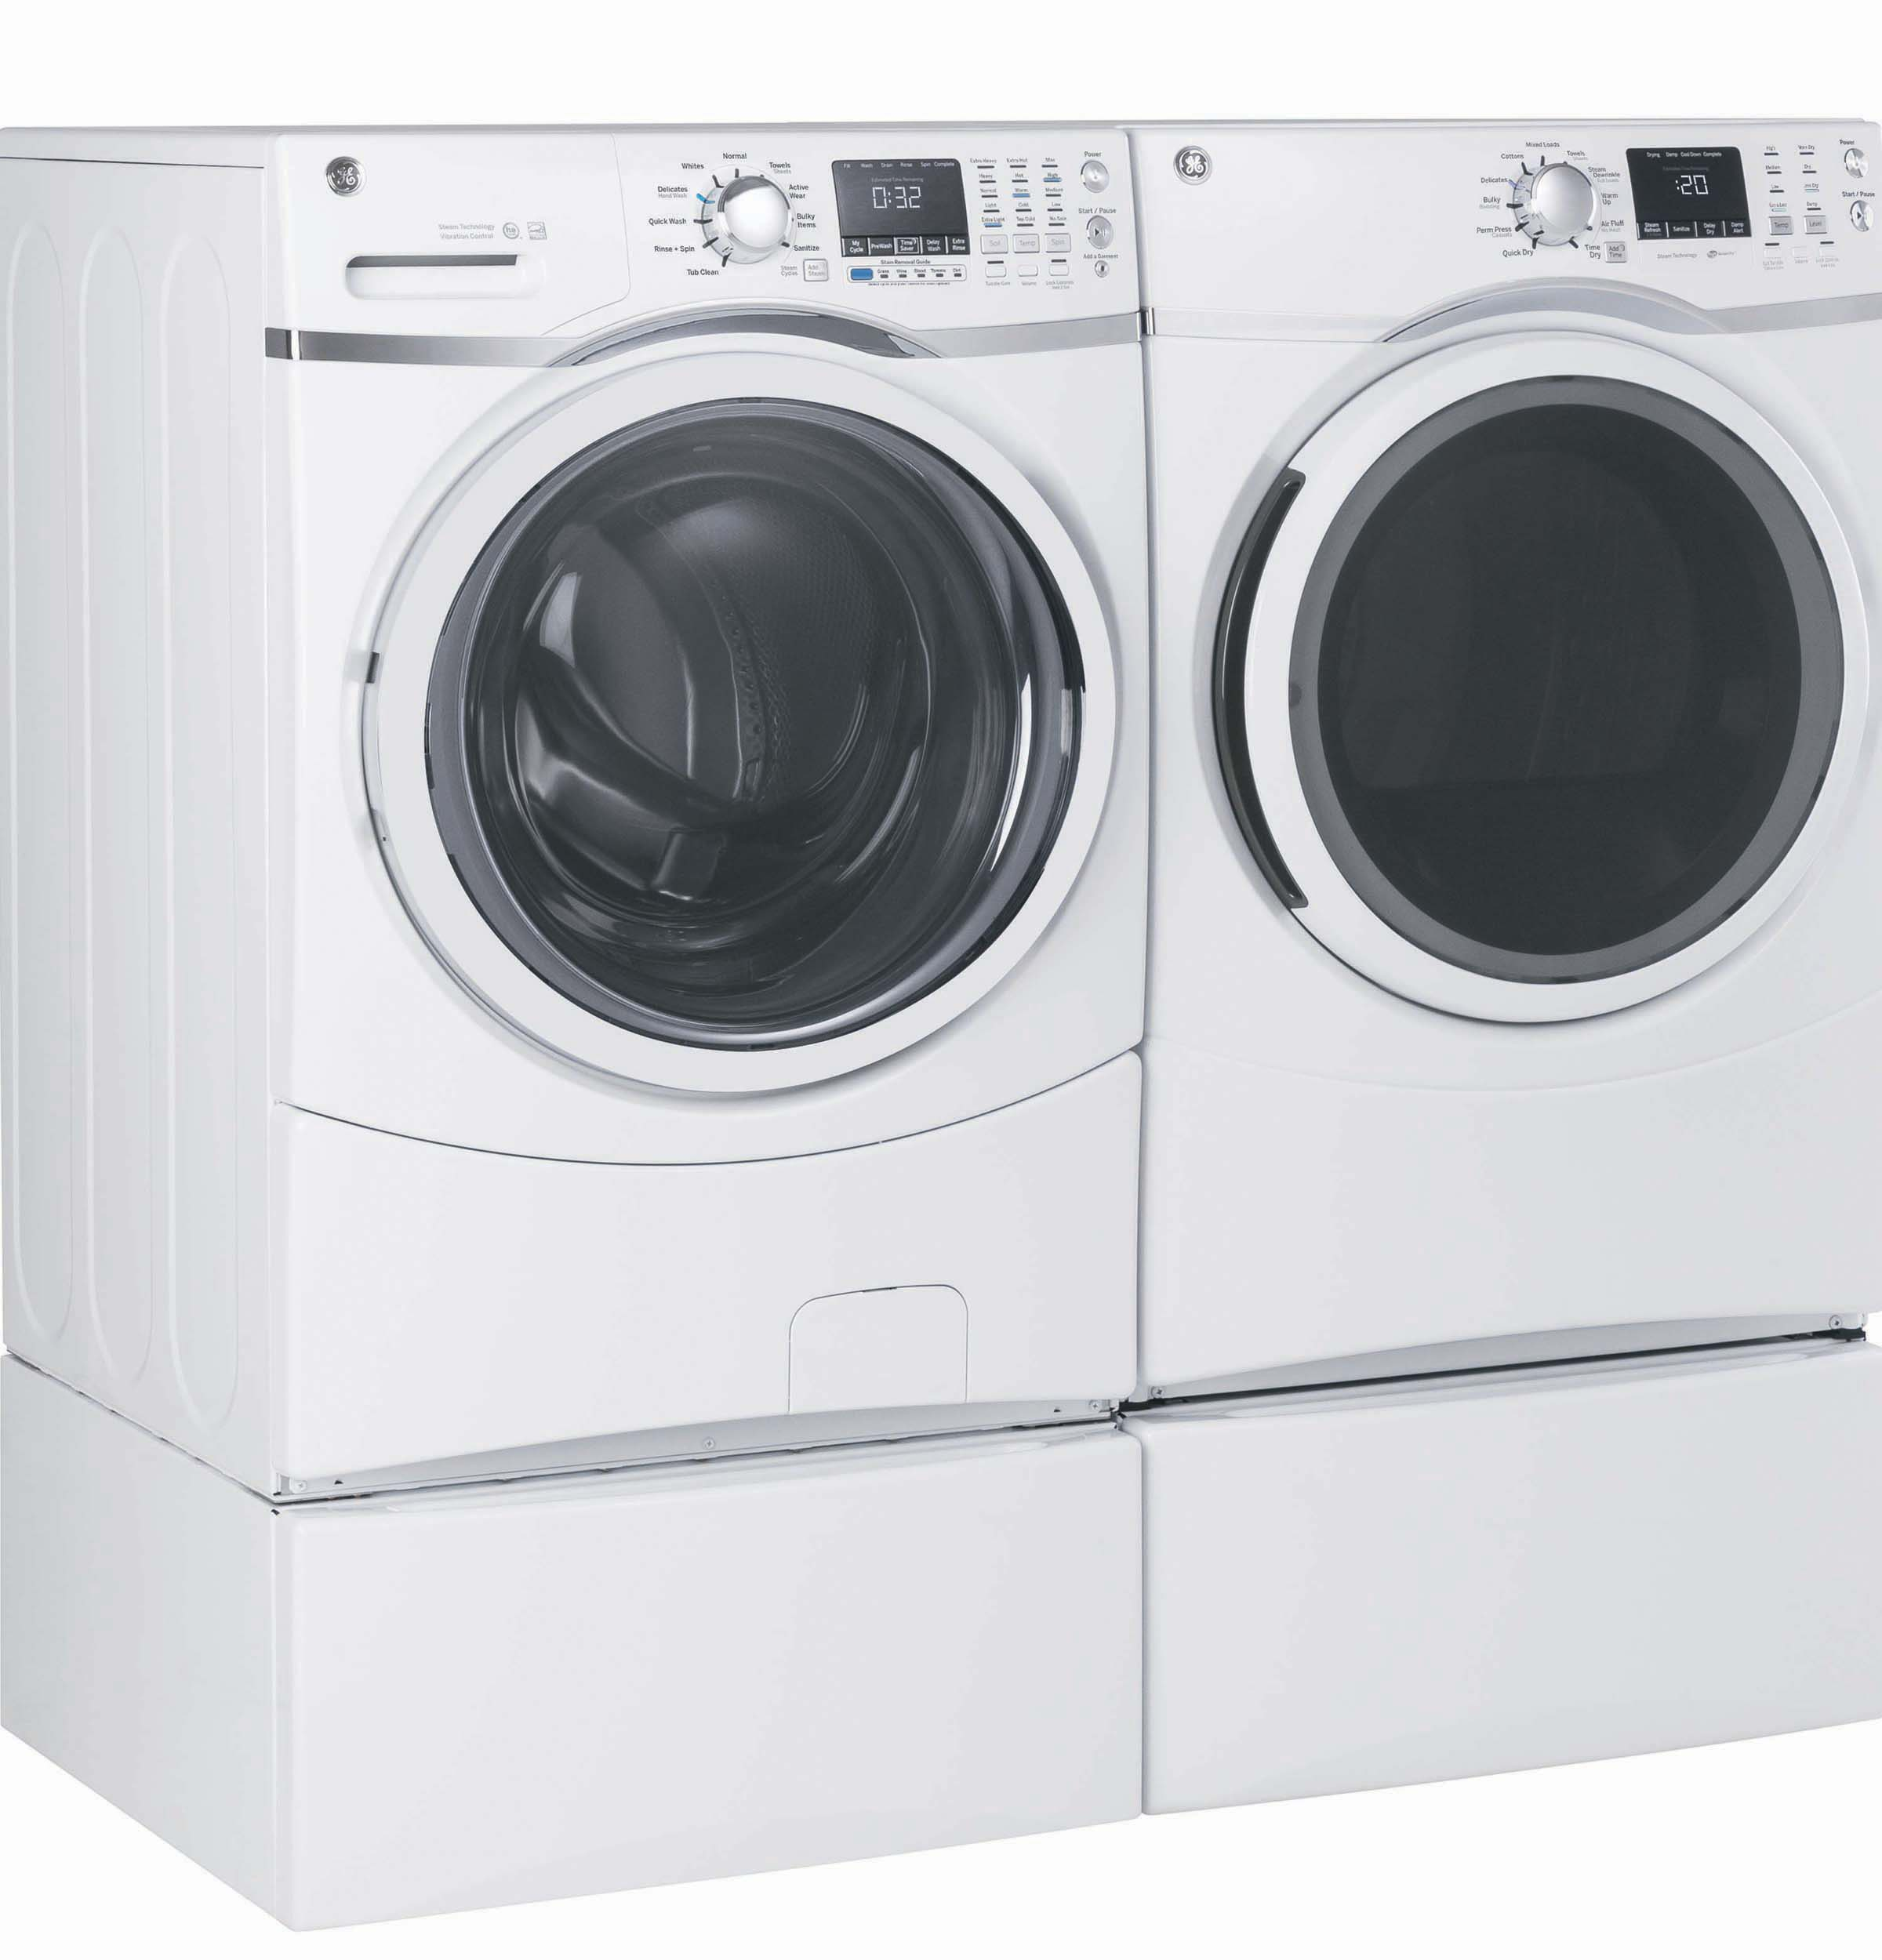 dryer pin for pedestal this by and washing diyprojects machine create space building washer storage